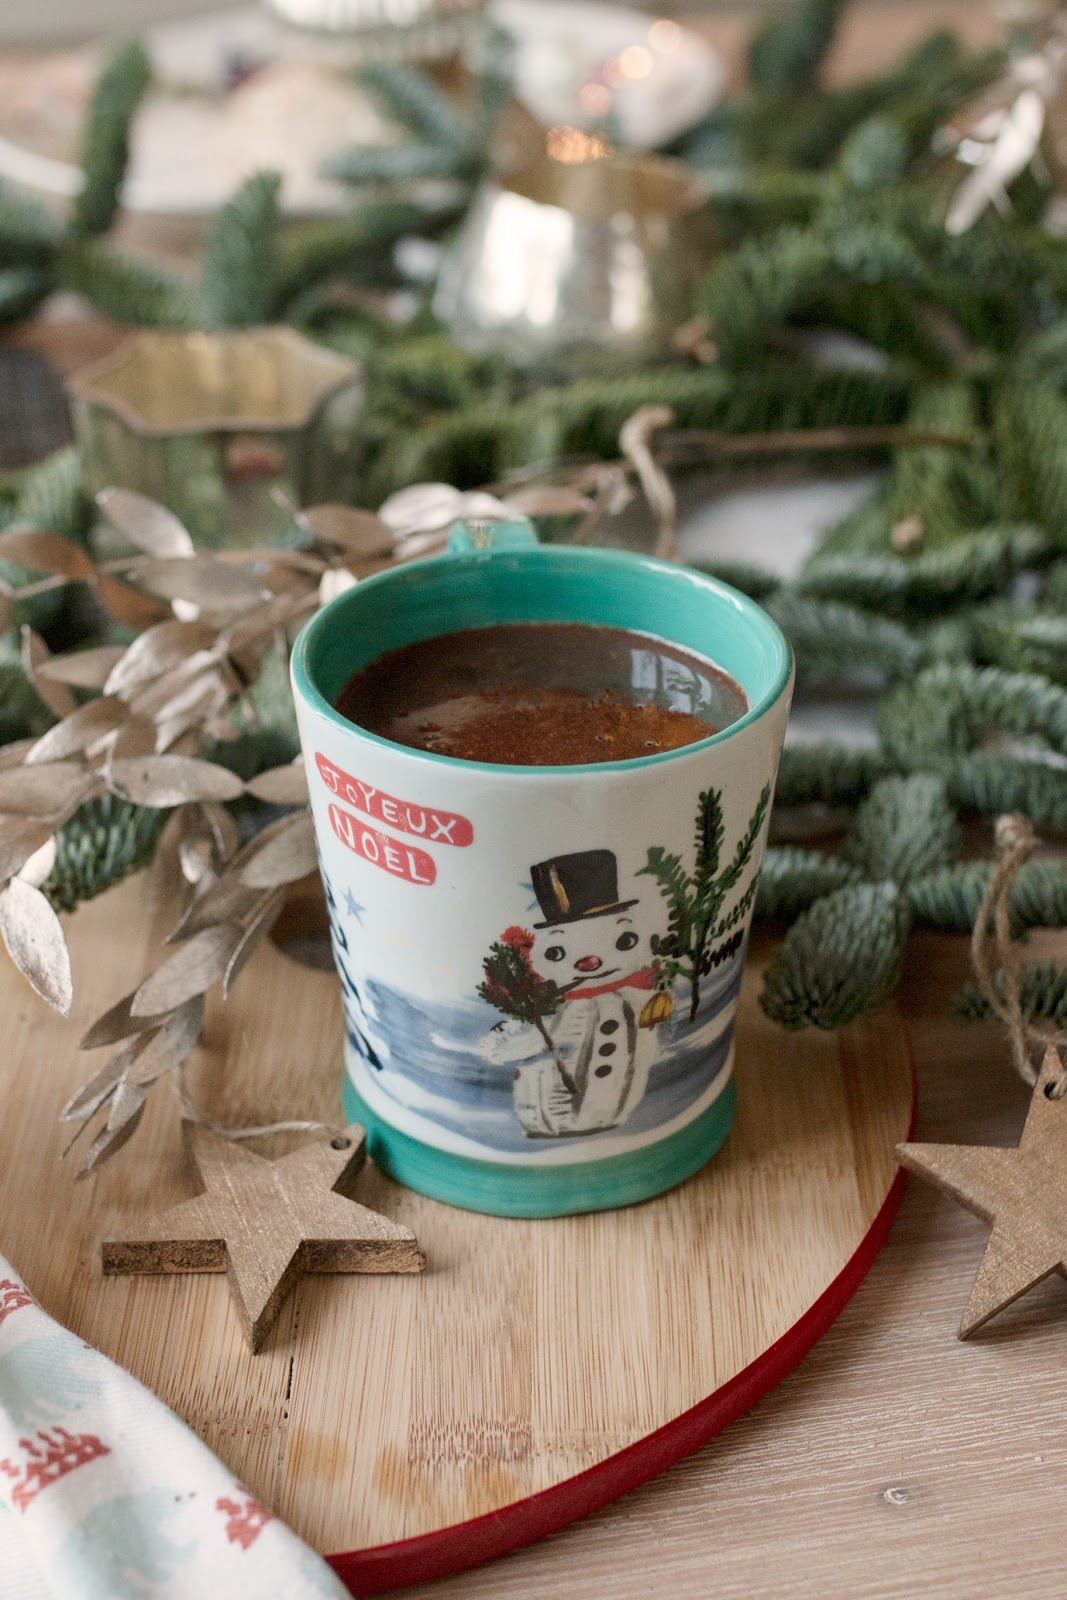 THE ULTIMATE FESTIVE HOT CHOCOLATE